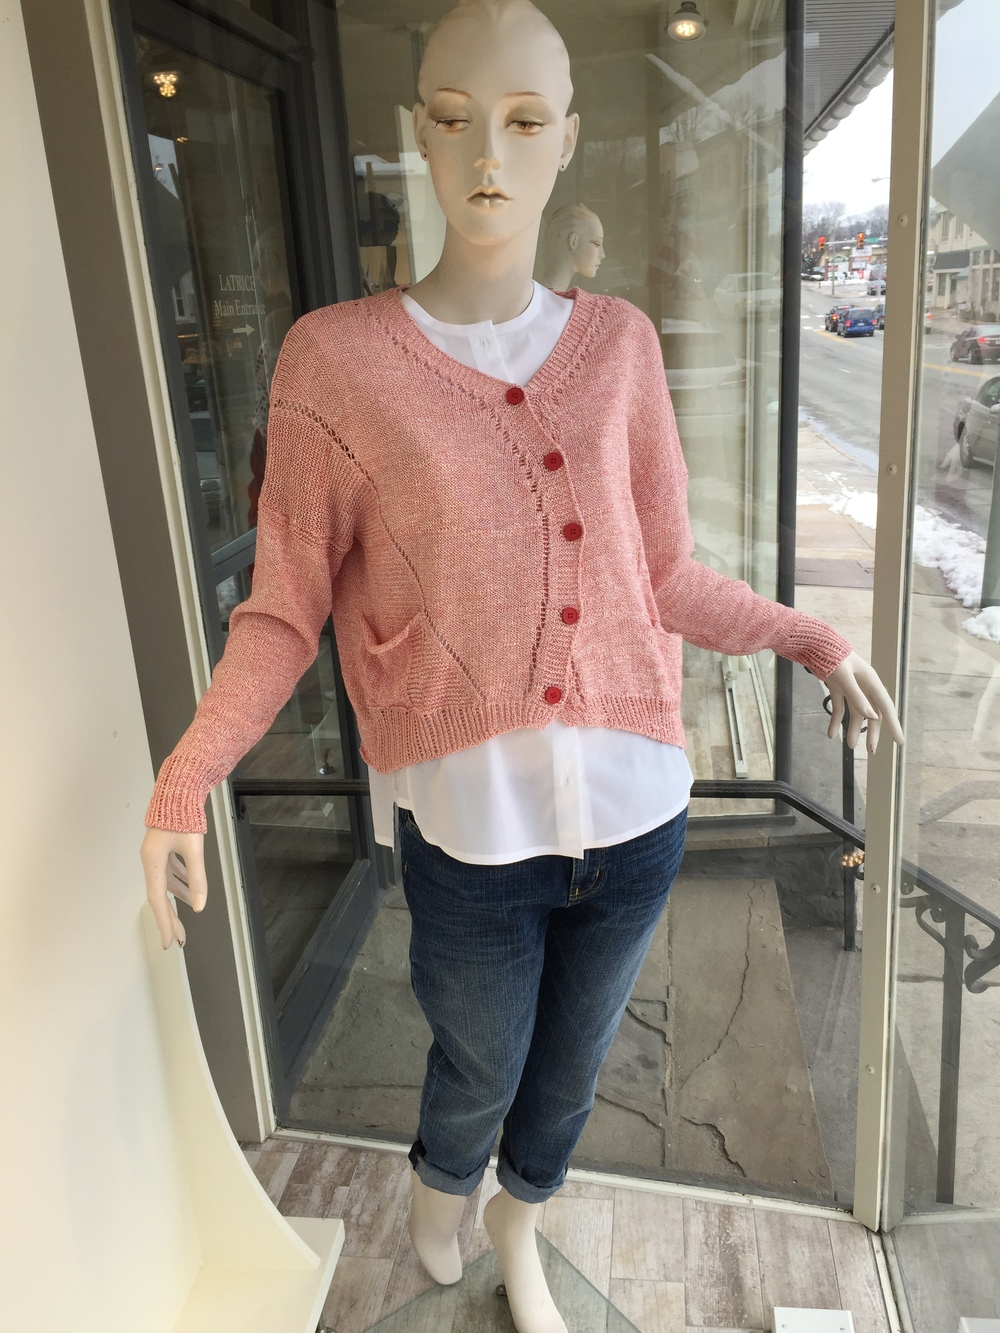 This off center cardigan is a great example of the interesting Spring knits we have in store from Lilith. We paired it backed to a collarless cotton shirt from Strenesse and a slouchy jean from J Brand.